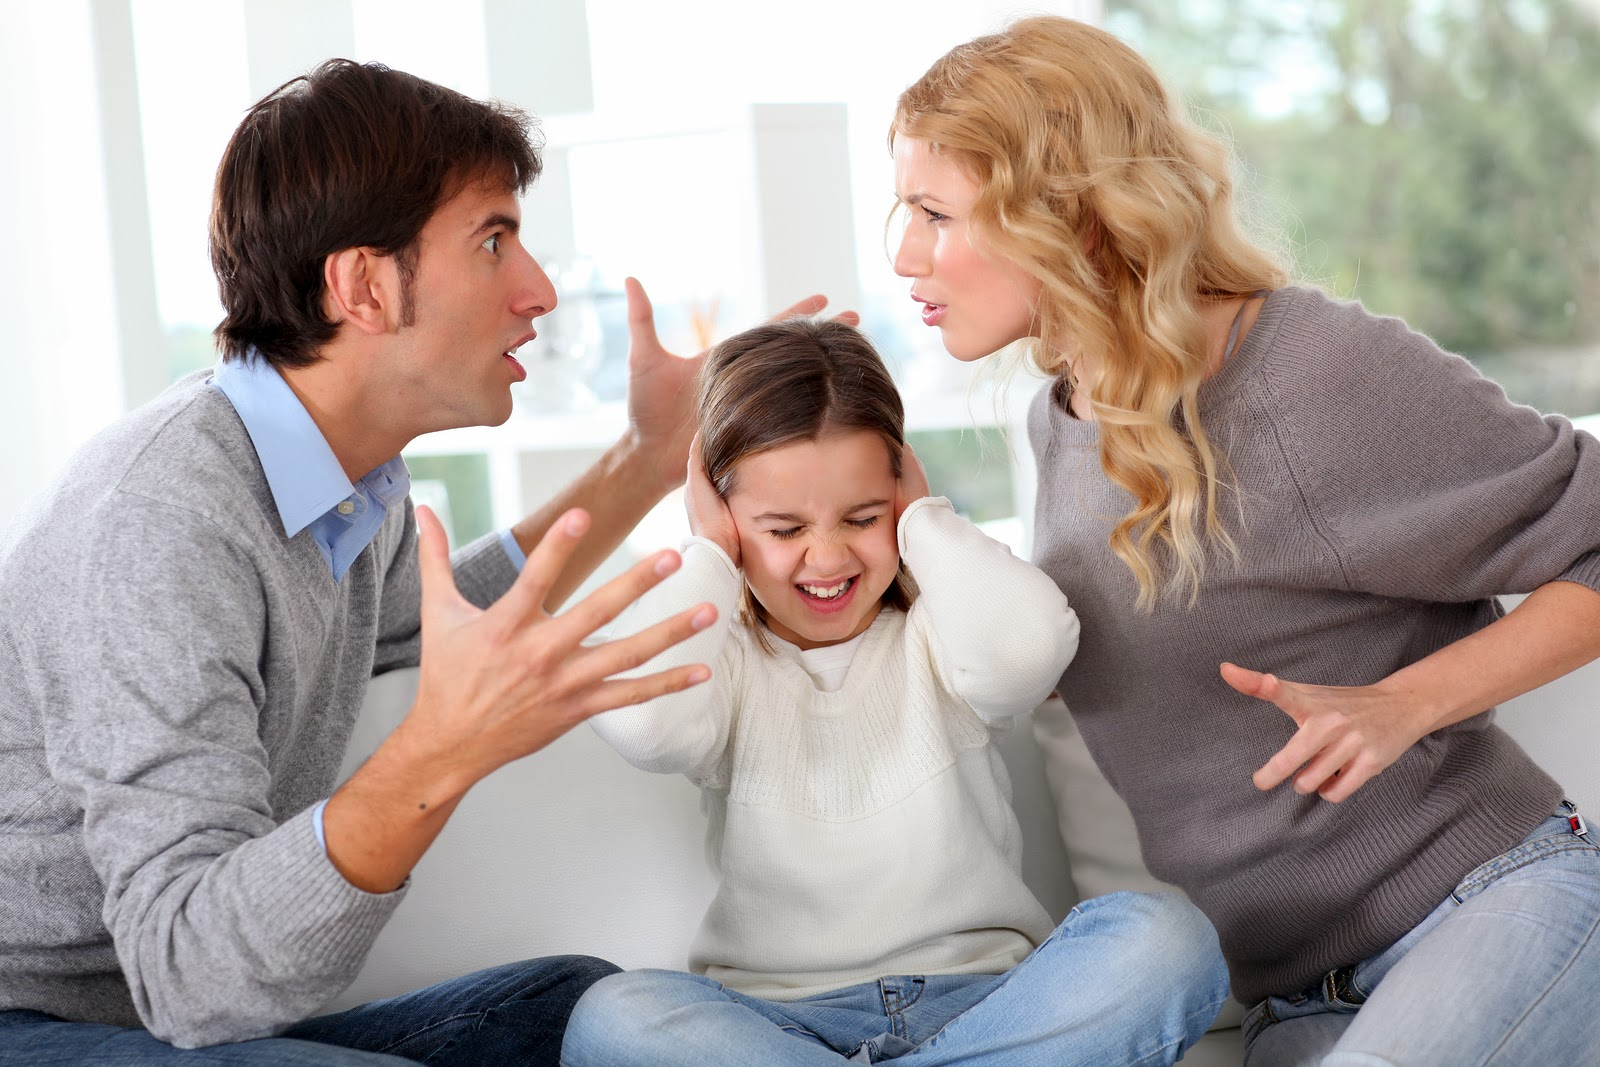 parents+arguing+over+child.jpg